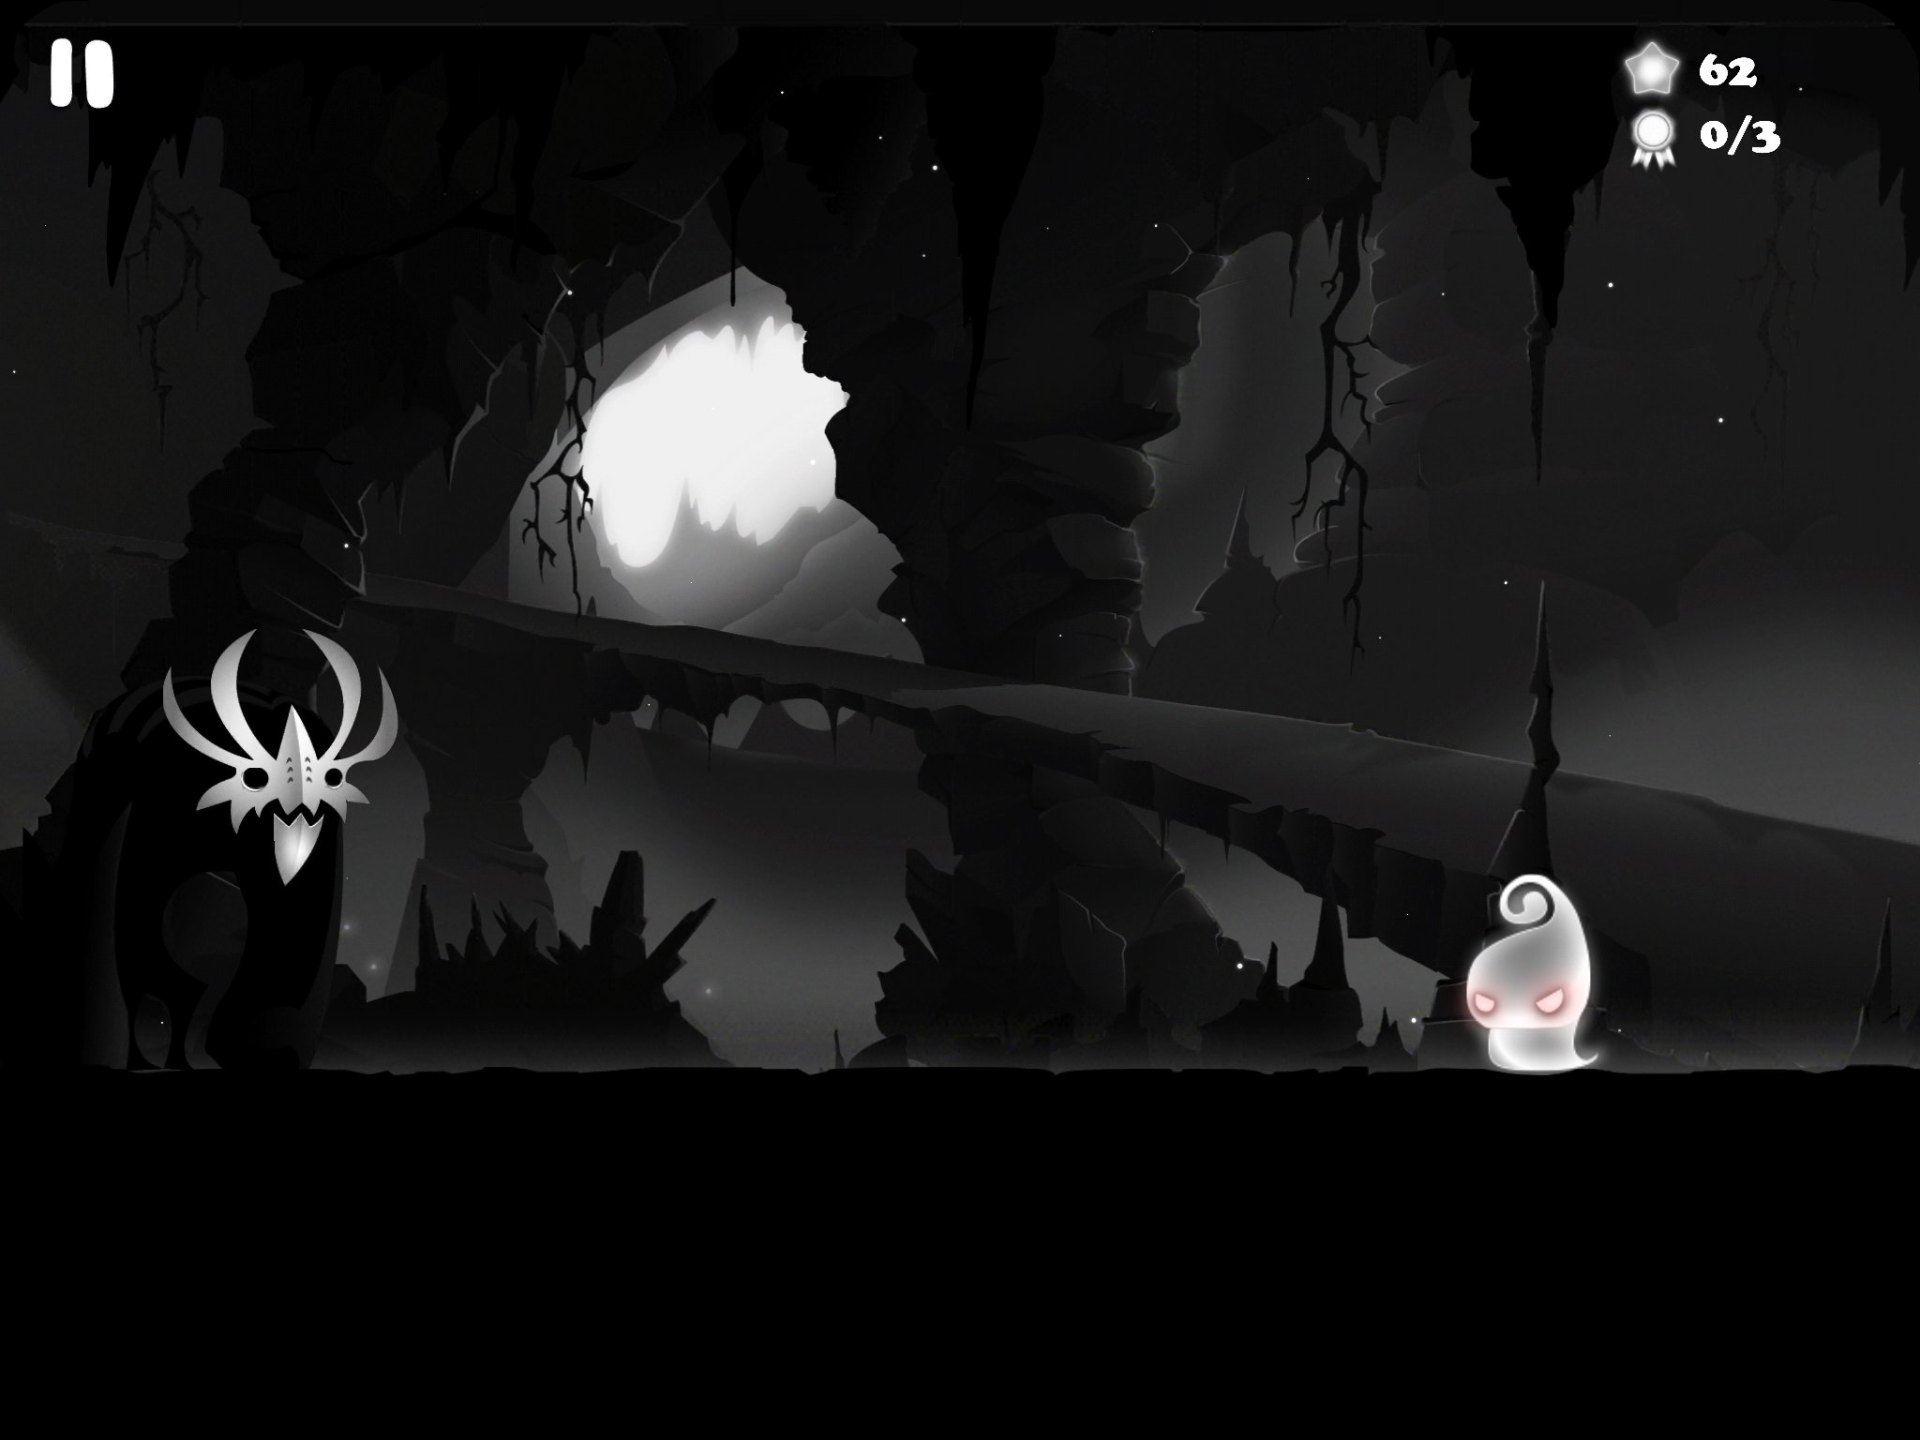 See 5 Games that Are Played in Black and White